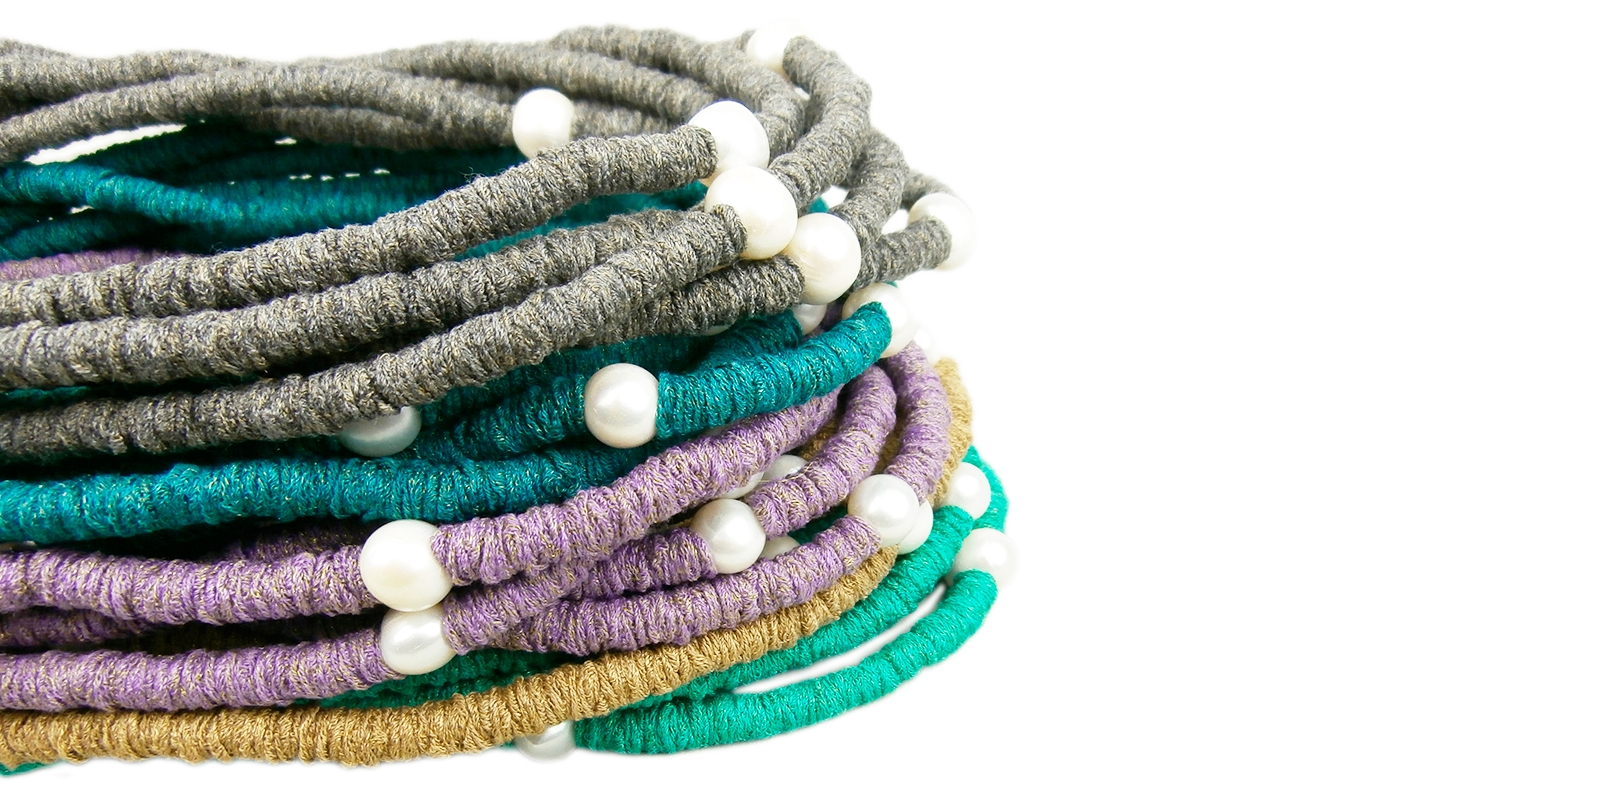 necklaces handcrafted with natural pearls.